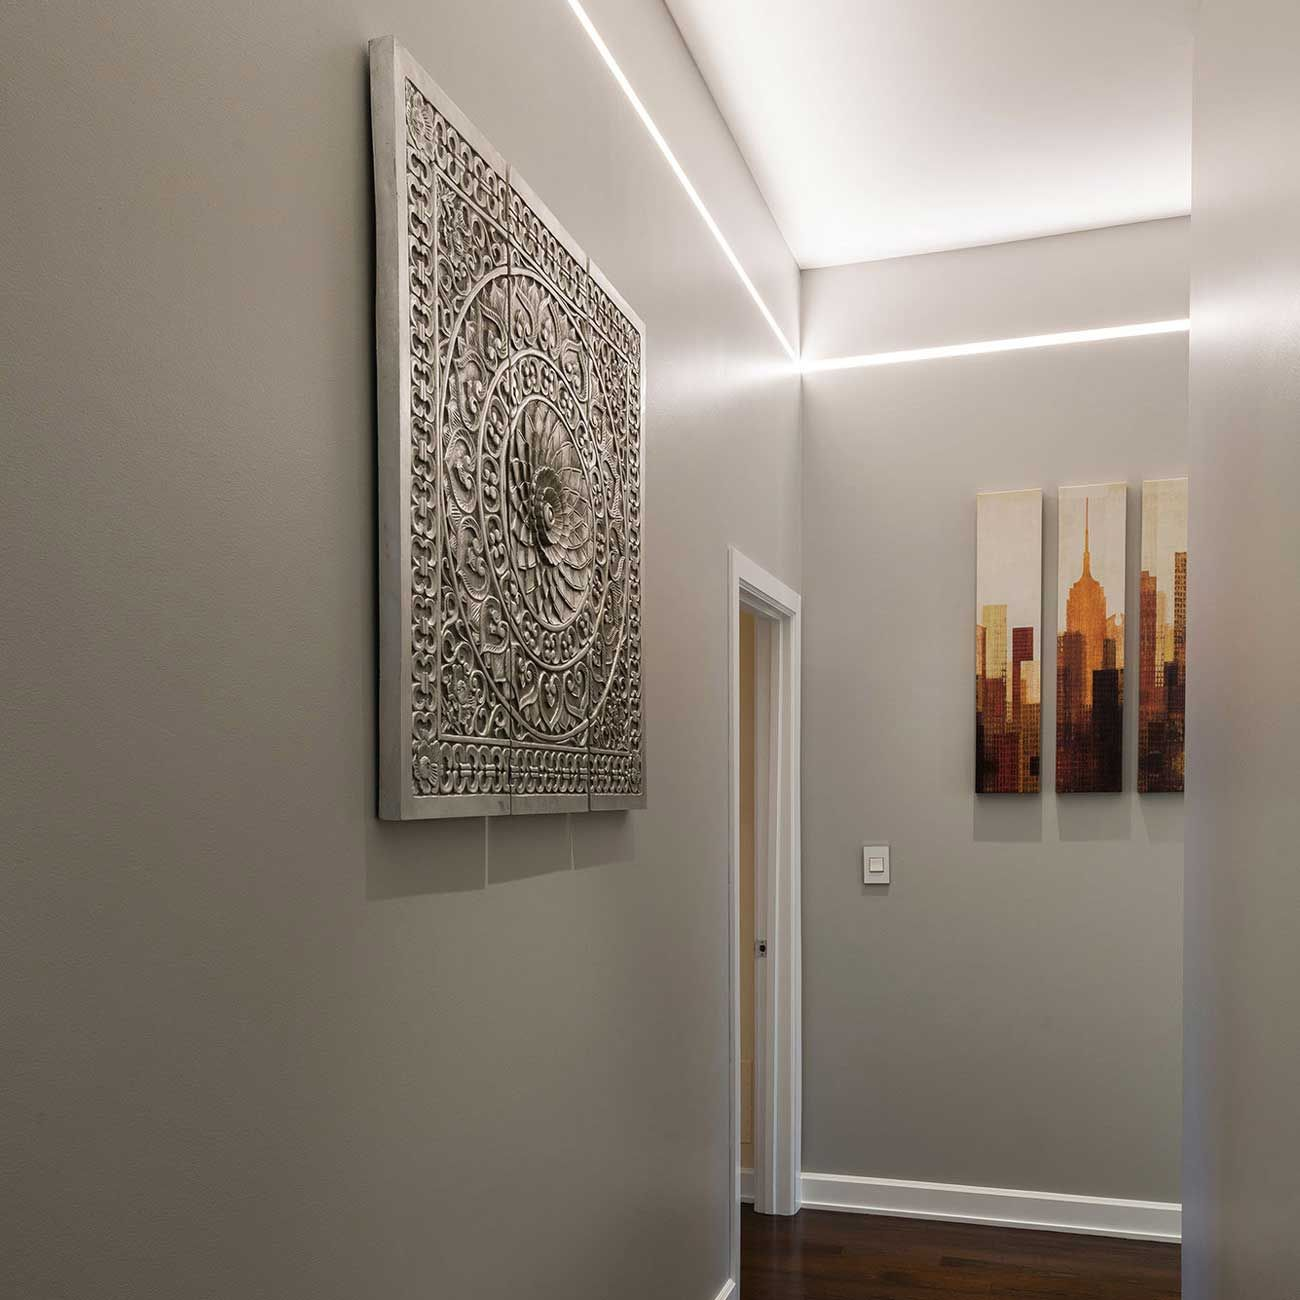 Reveal Cove Pathway Plaster In Led System 24v 417 E Pine